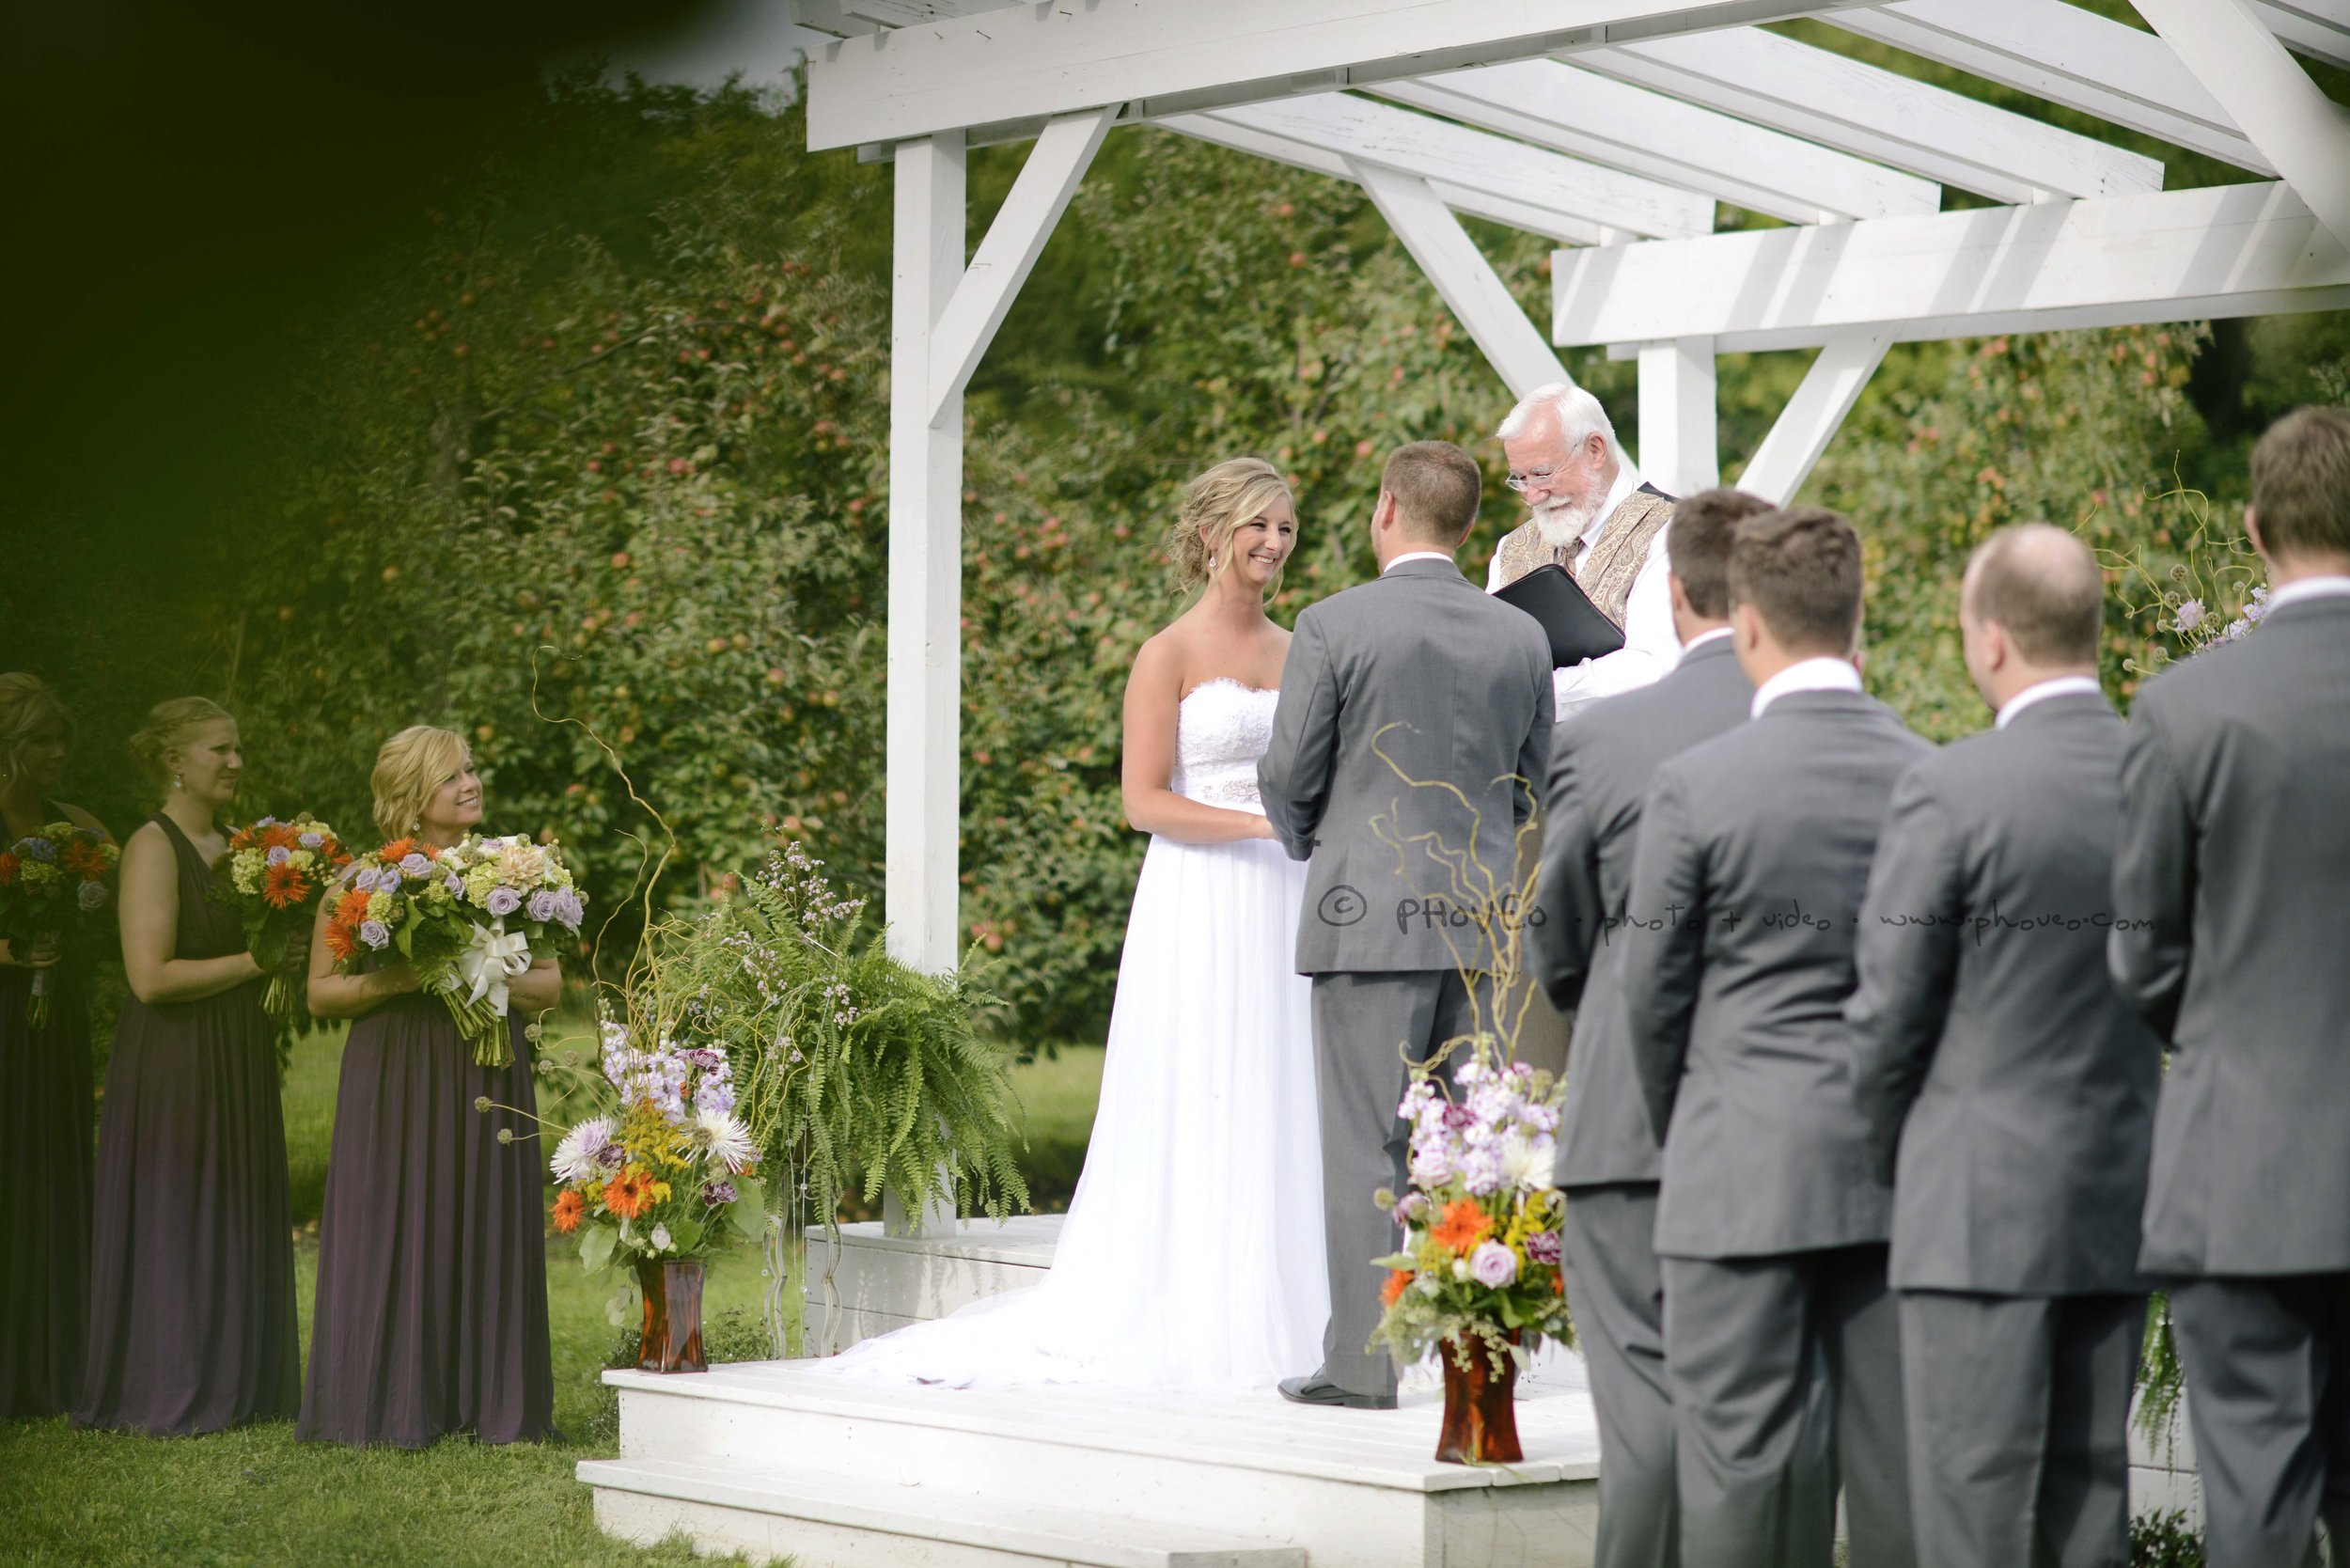 WM_20160826_Katelyn+Tony_48.jpg